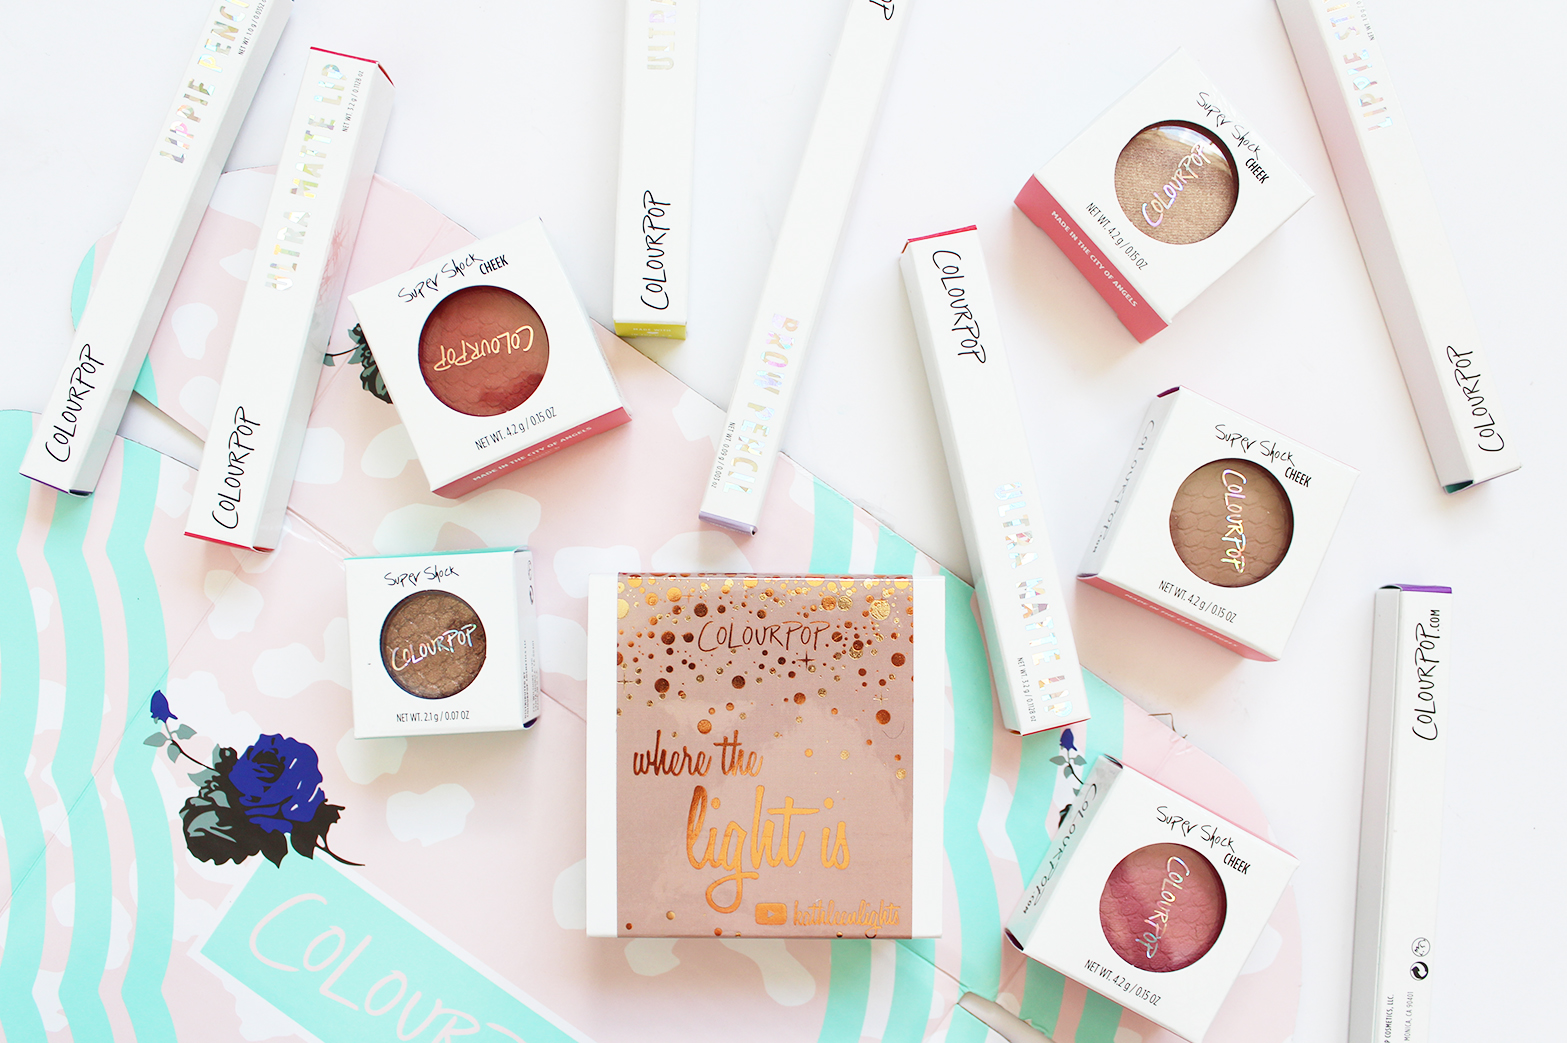 COLOURPOP | Haul, Swatches + First Impressions - CassandraMyee